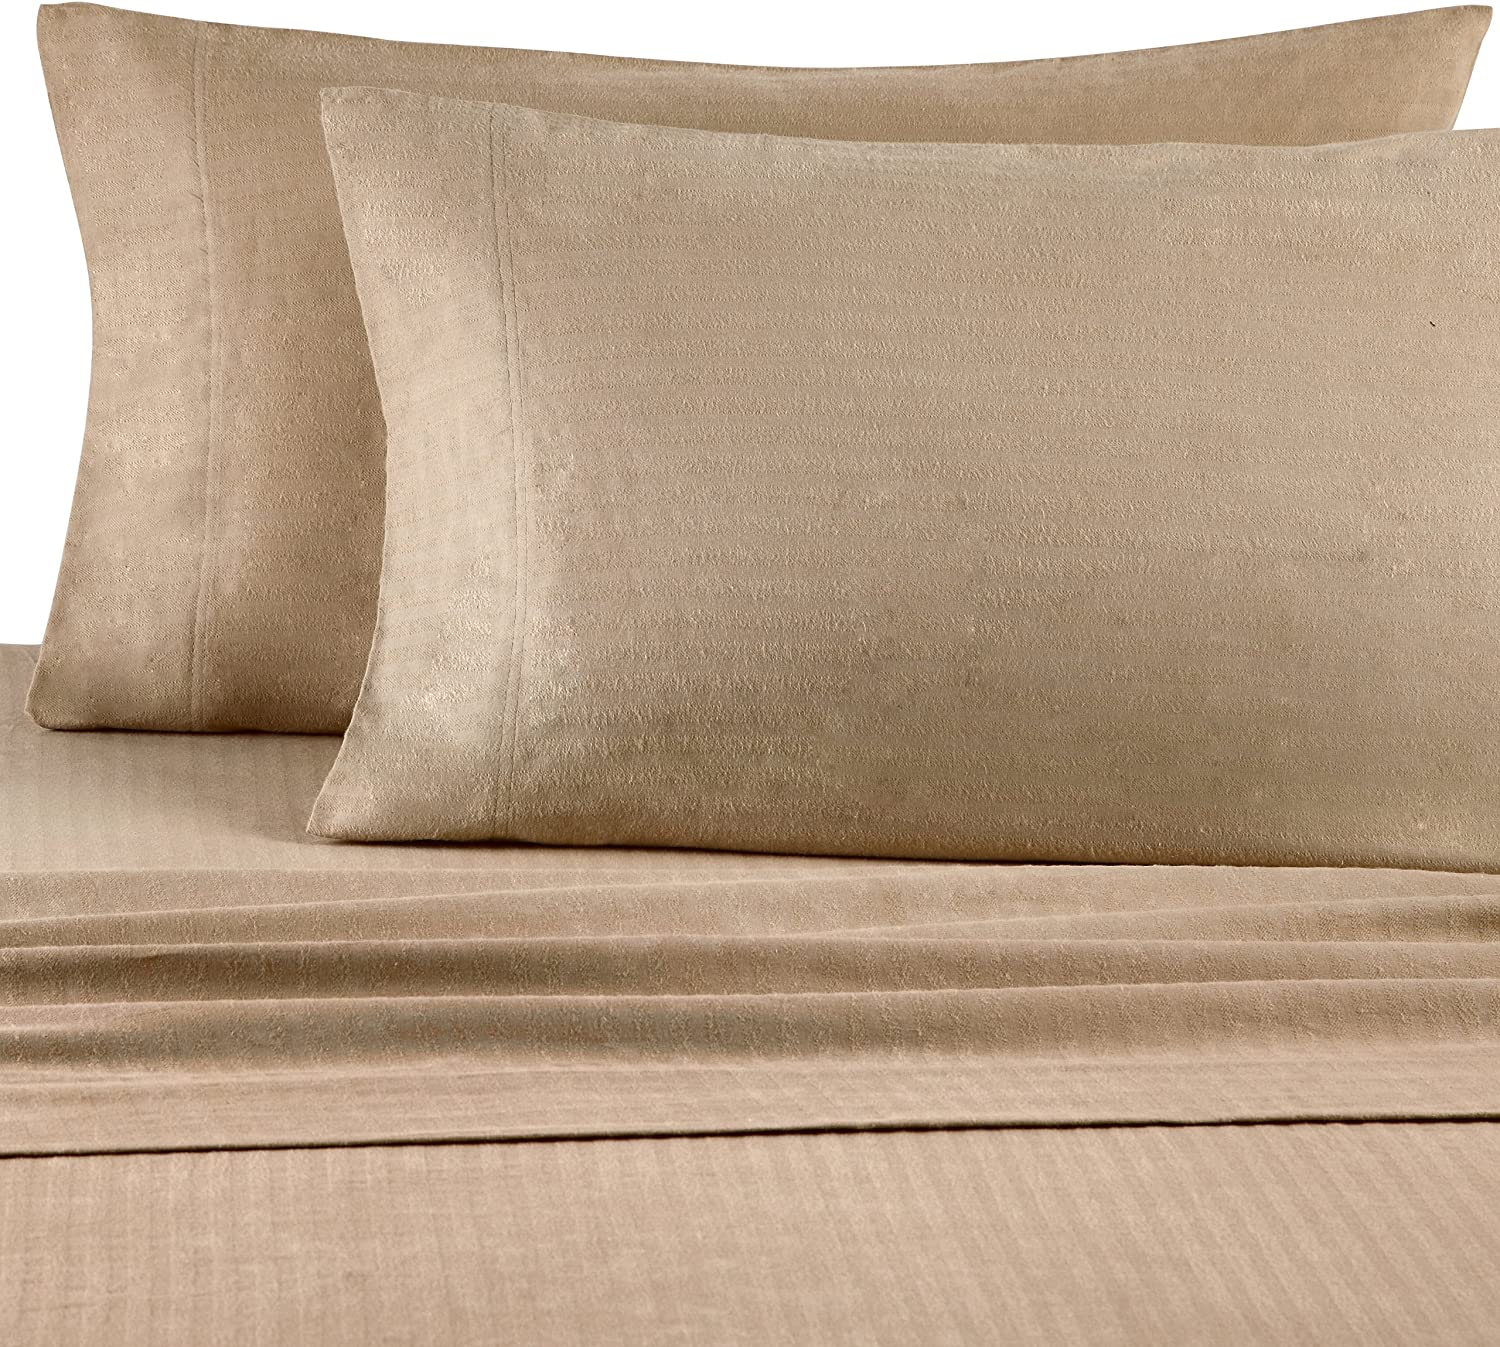 Casual Living Heavyweight Damask Stripe Flannel Sheet Set, Queen, Linen